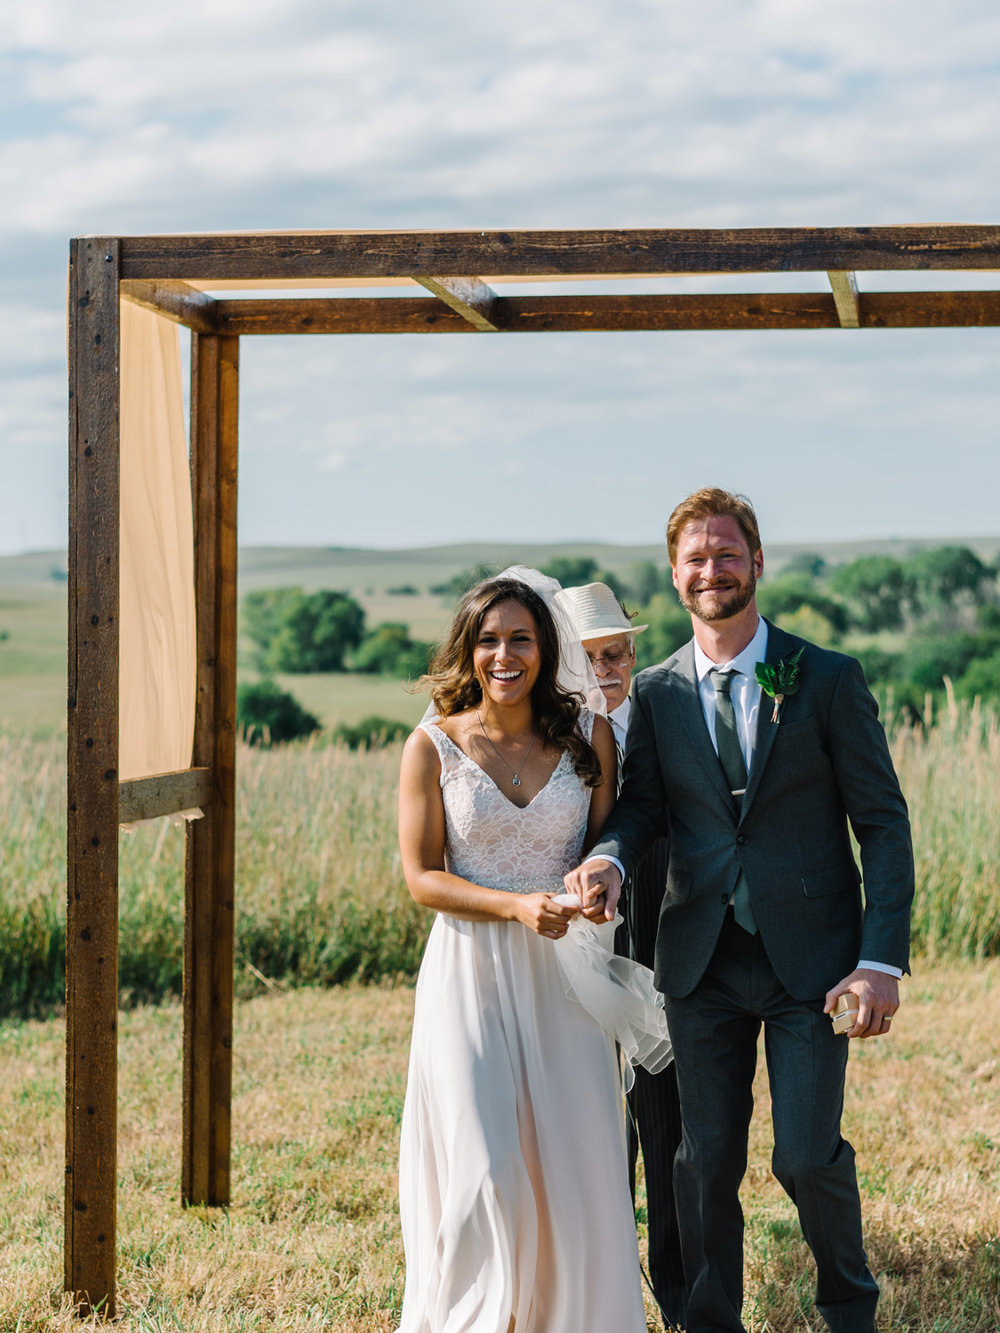 Flint Hills Wedding-Clover Cliff Bed and Breakfast-Neal Dieker-Wichita, Kansas Wedding Photographer-Kansas Outdoor Wedding-199.jpg